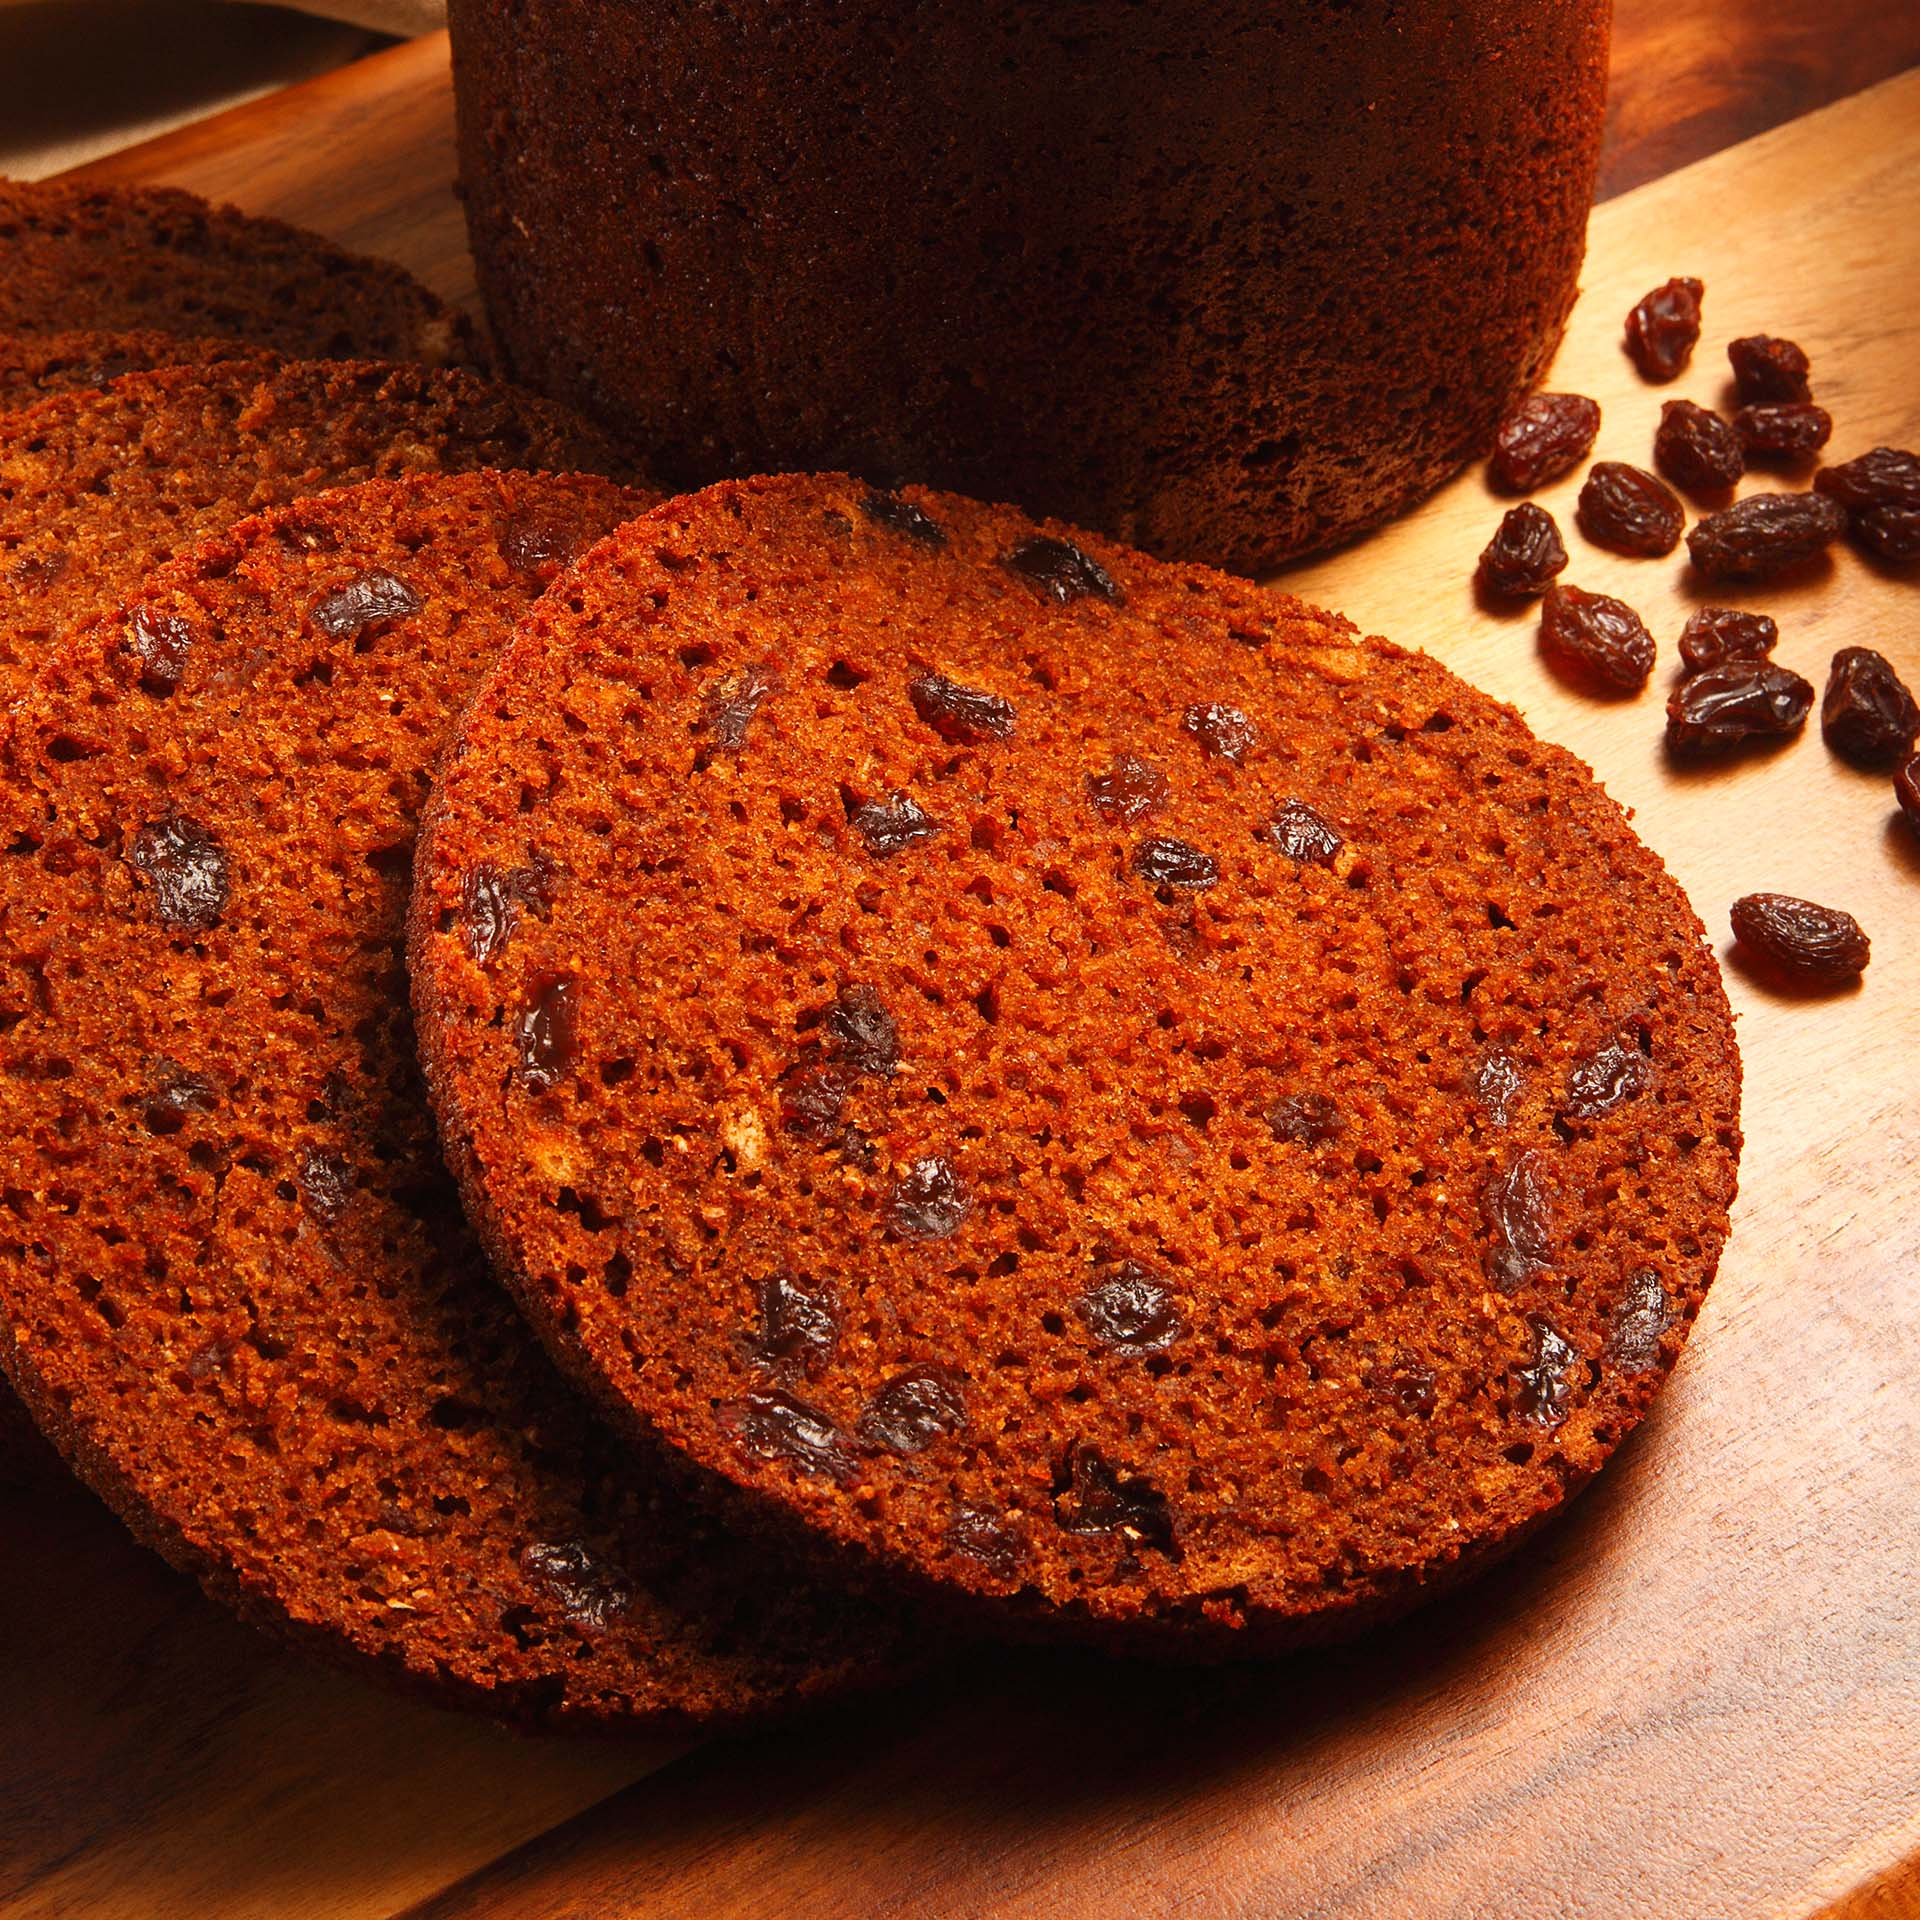 Baked Brown Raisin Bread California Raisins